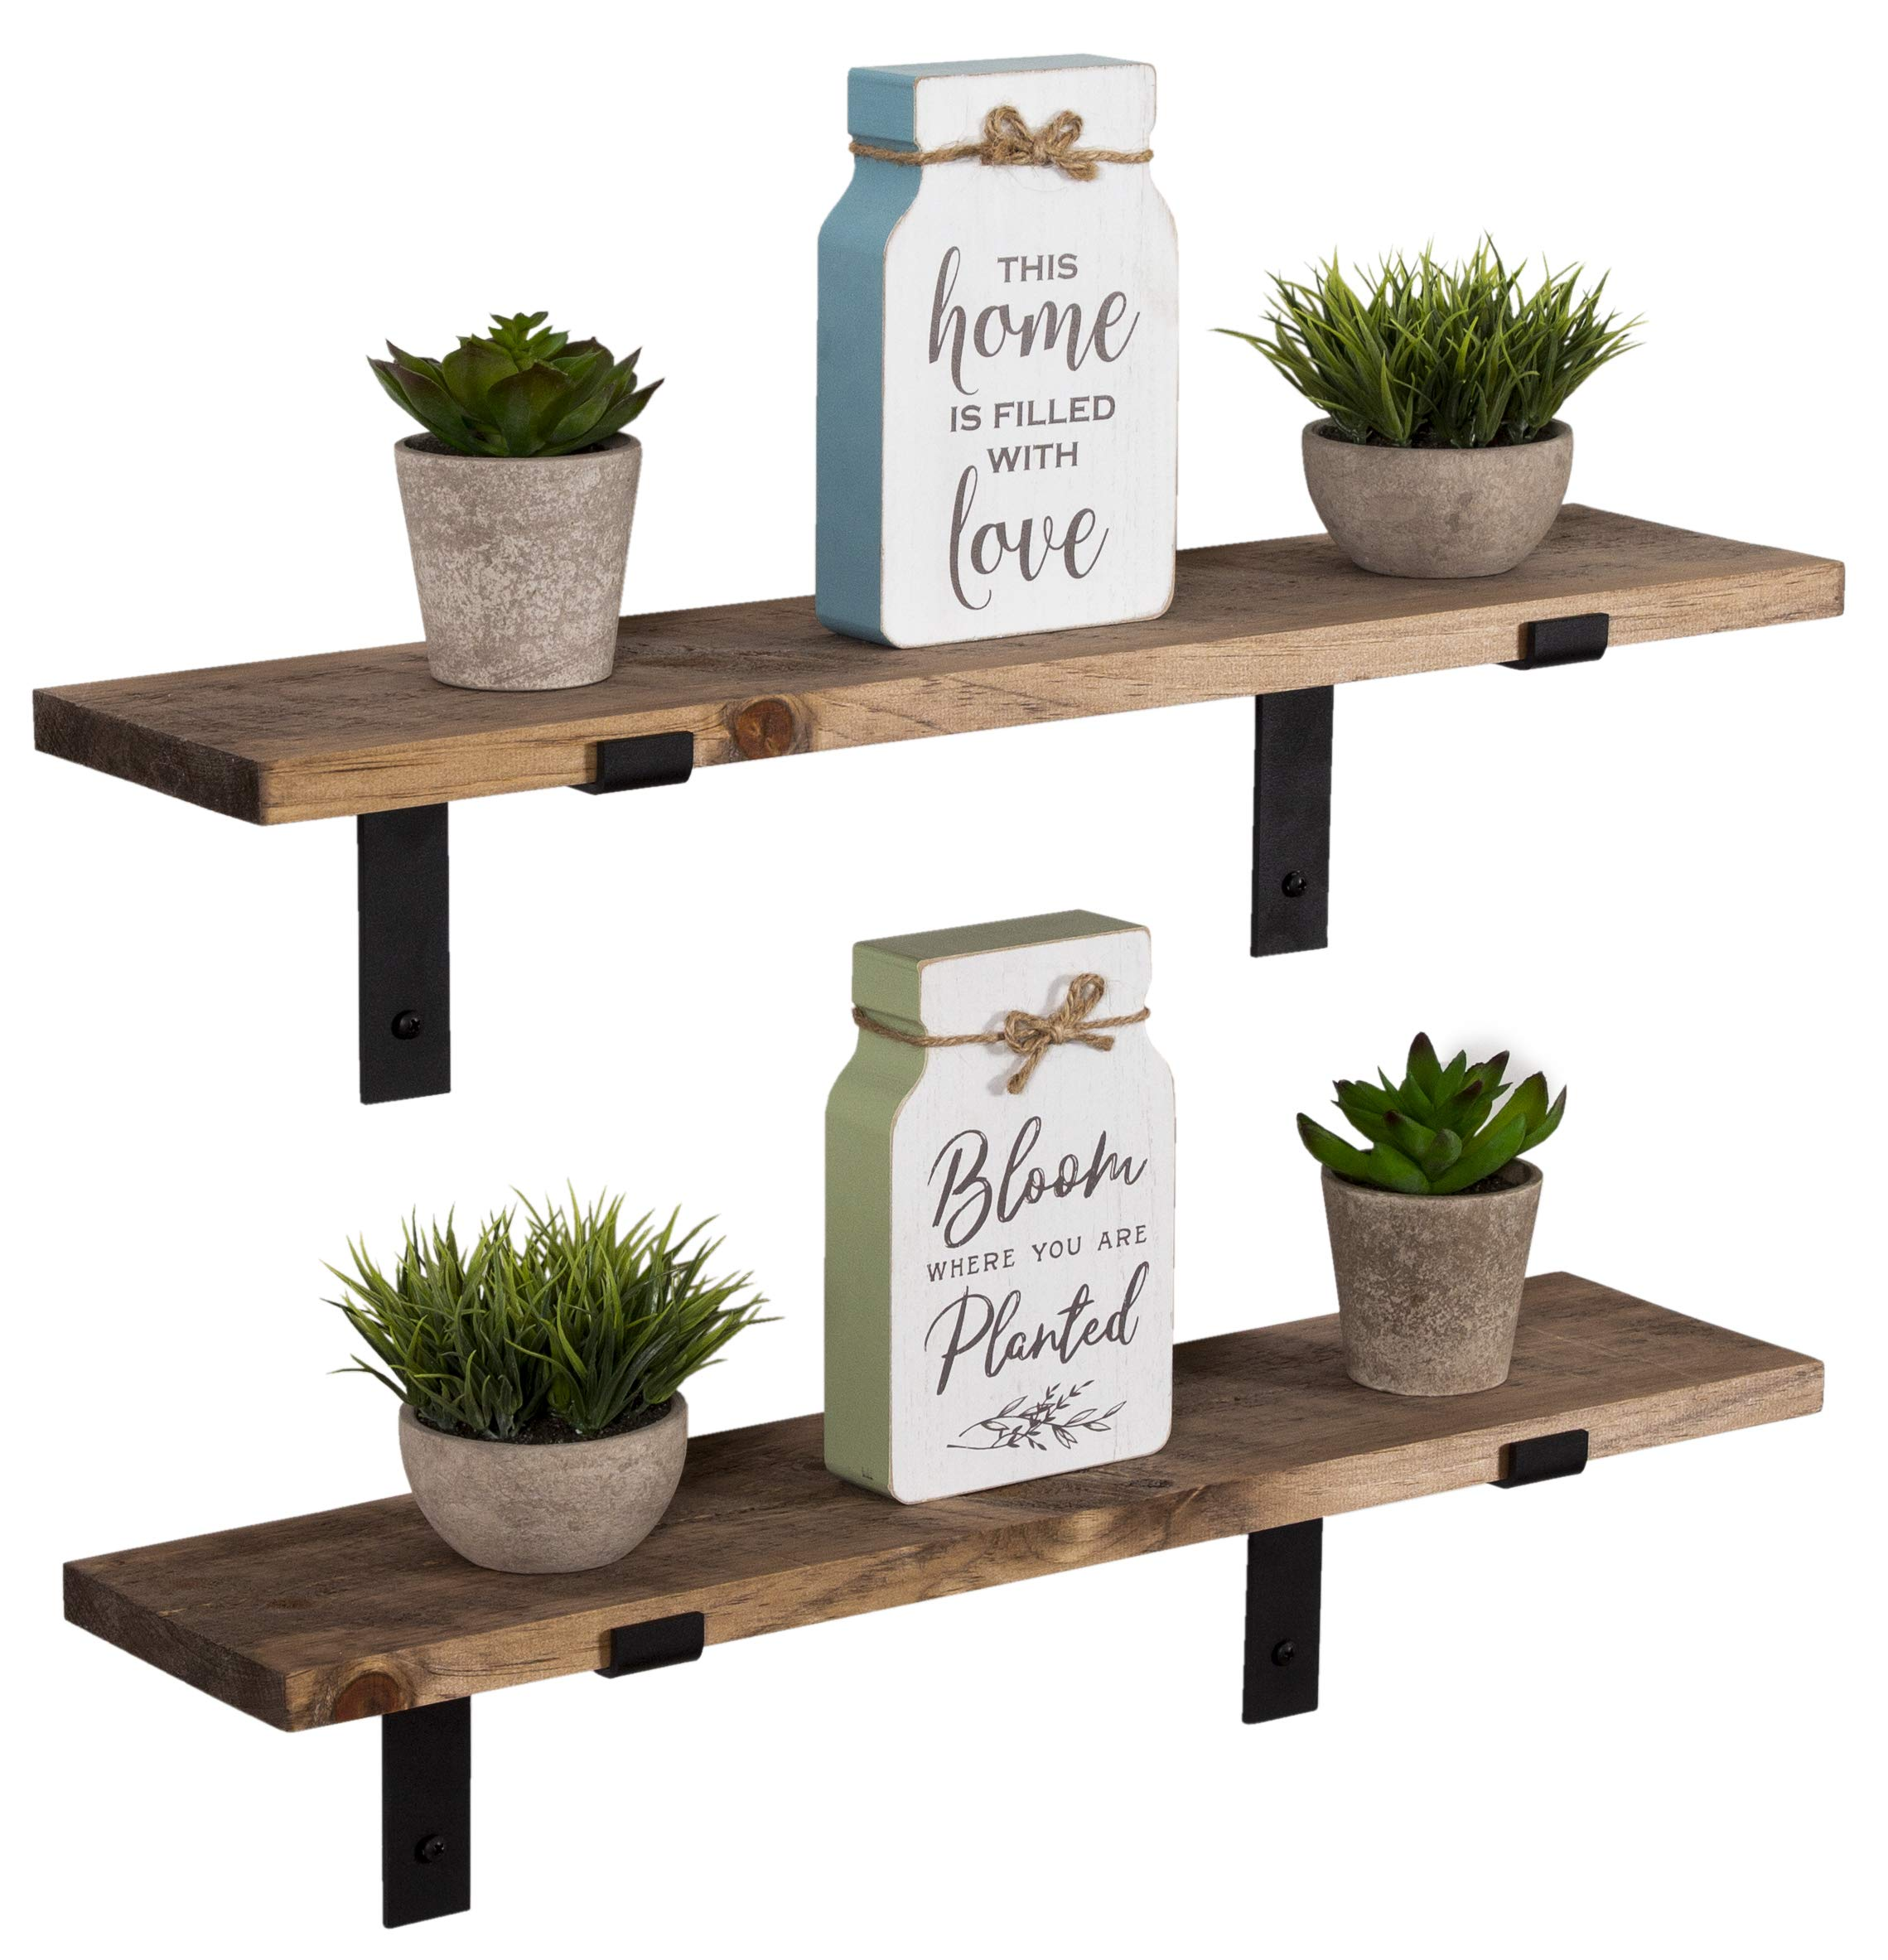 Imperative Décor Rustic Wood Floating Shelves Wall Mounted Storage Shelf with L Brackets USA Handmade| Set of 2 (24 x 5.5in) (Special Walnut) by Imperative Décor